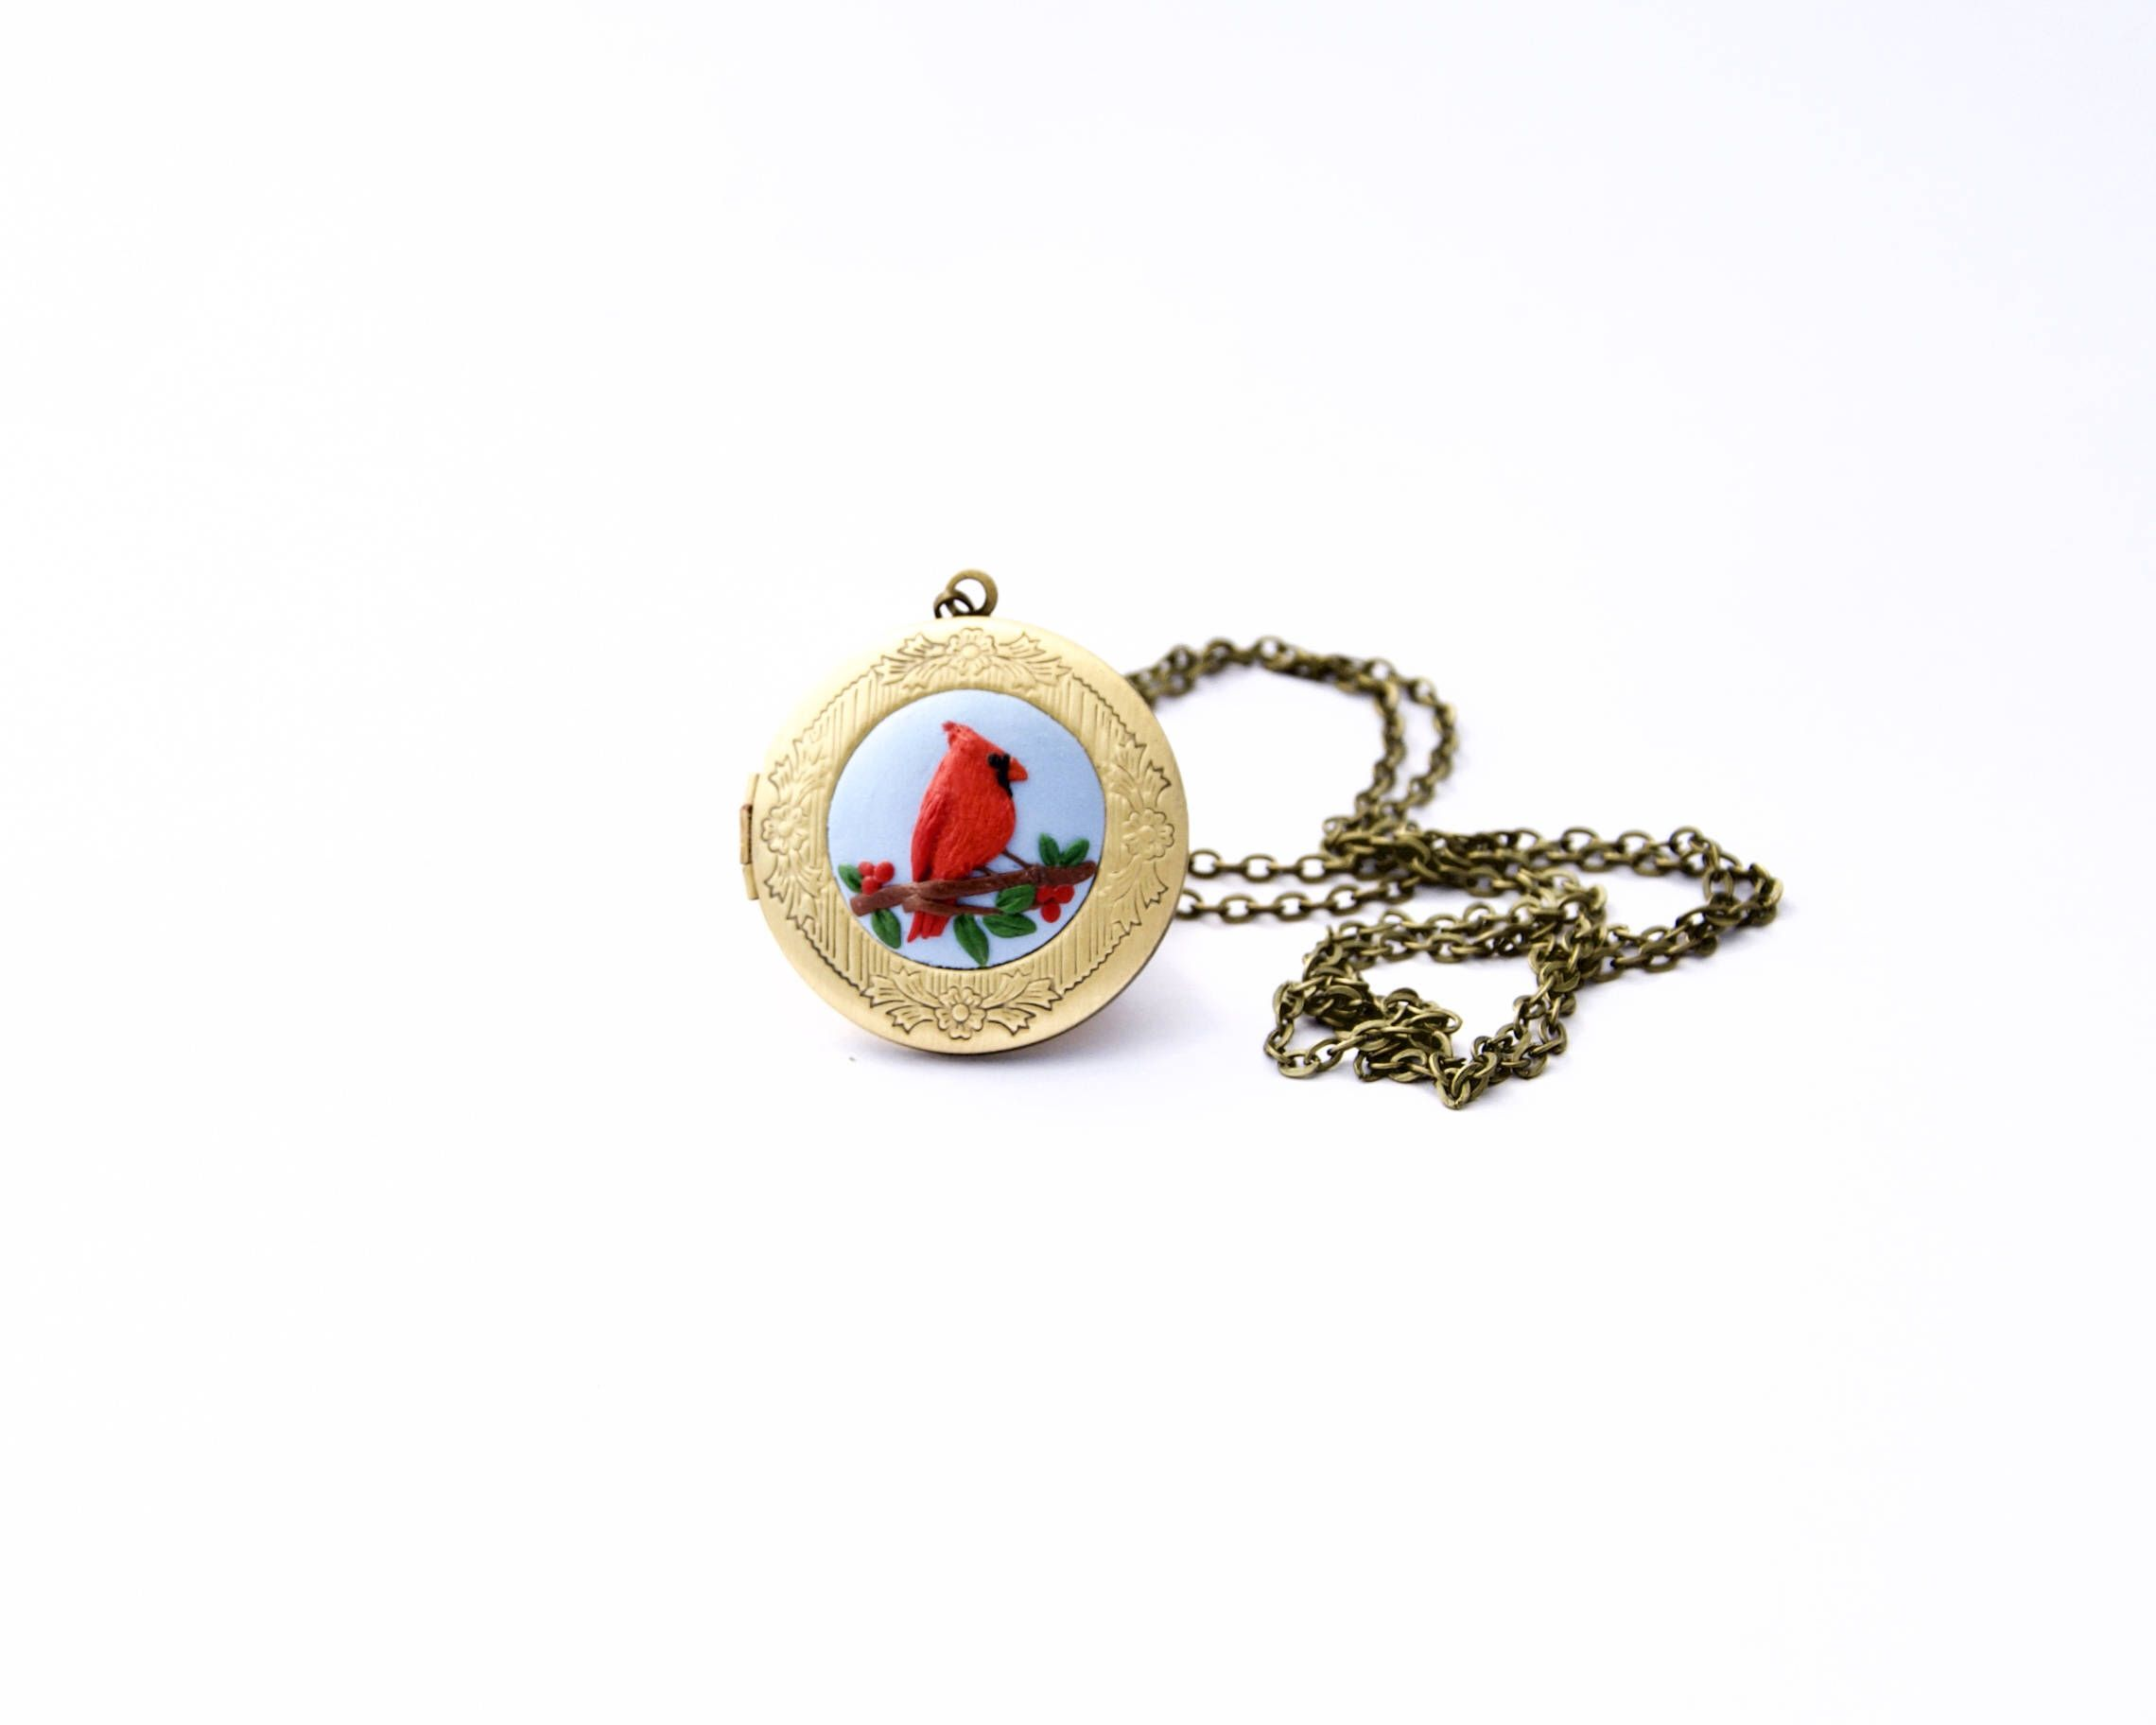 mother pin green inlaid of bird pendant large necklace design berries and cardinal mop pearl leaves red